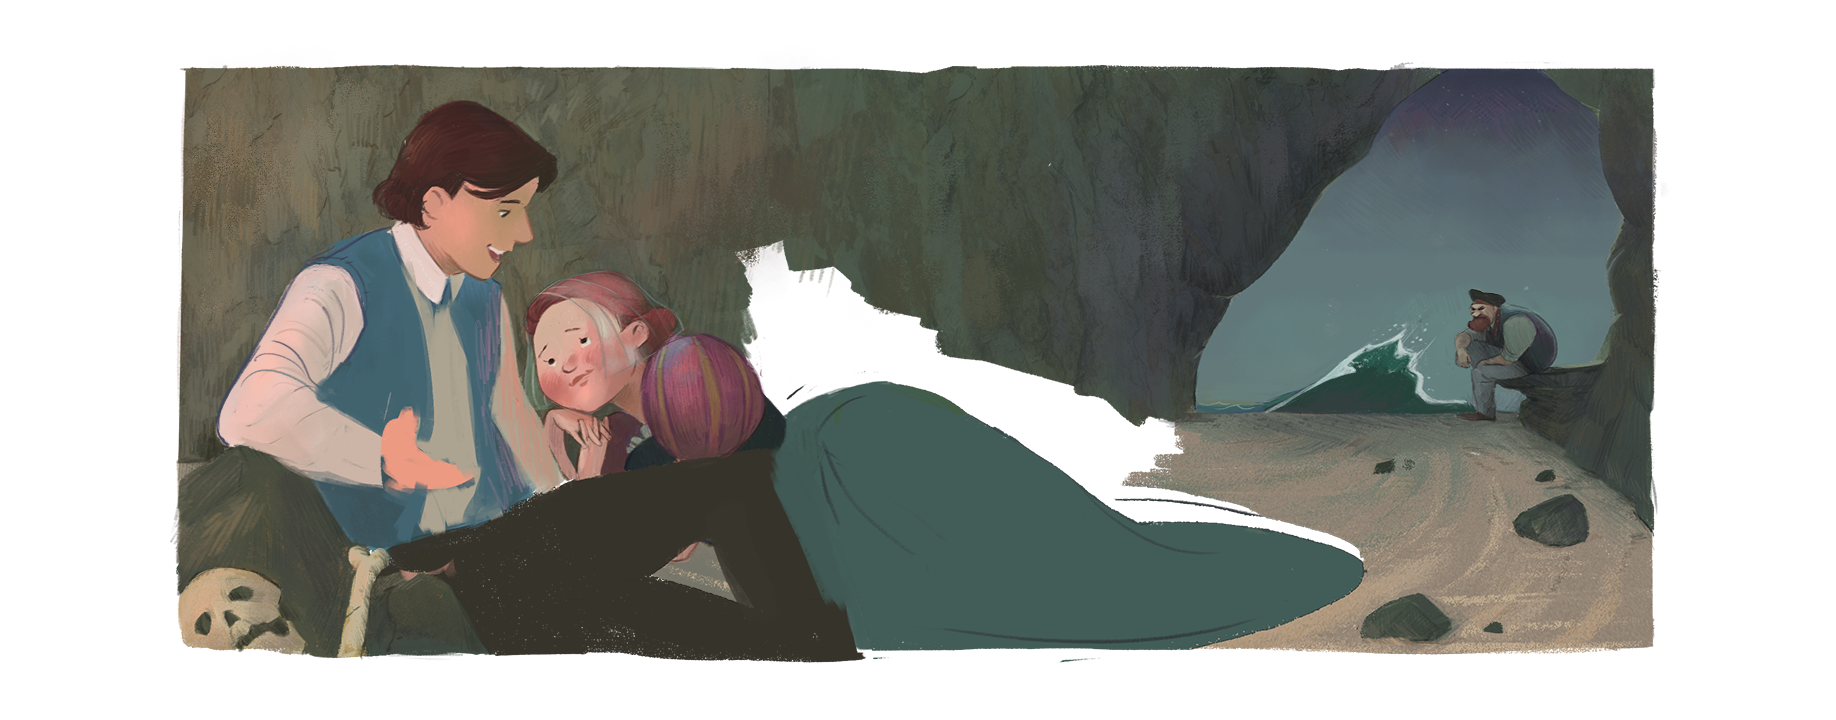 in_the_cave_wip.png